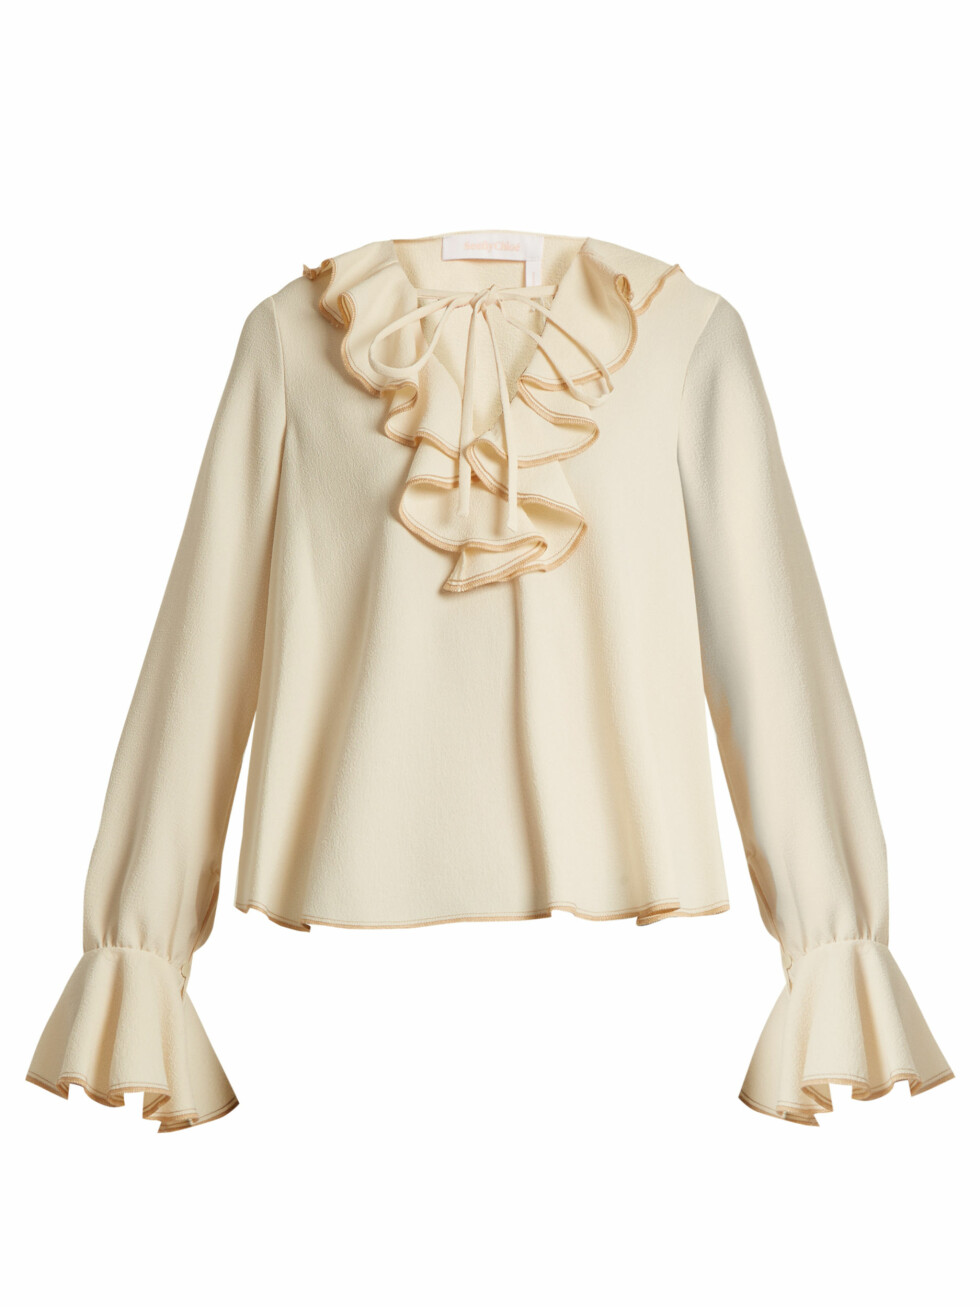 Overdel fra See By Chloe via Matchesfashion.com | kr 1865 | http://www.matchesfashion.com/intl/products/See-By-Chlo%C3%A9-Ruffled-stretch-crepe-top--1152923